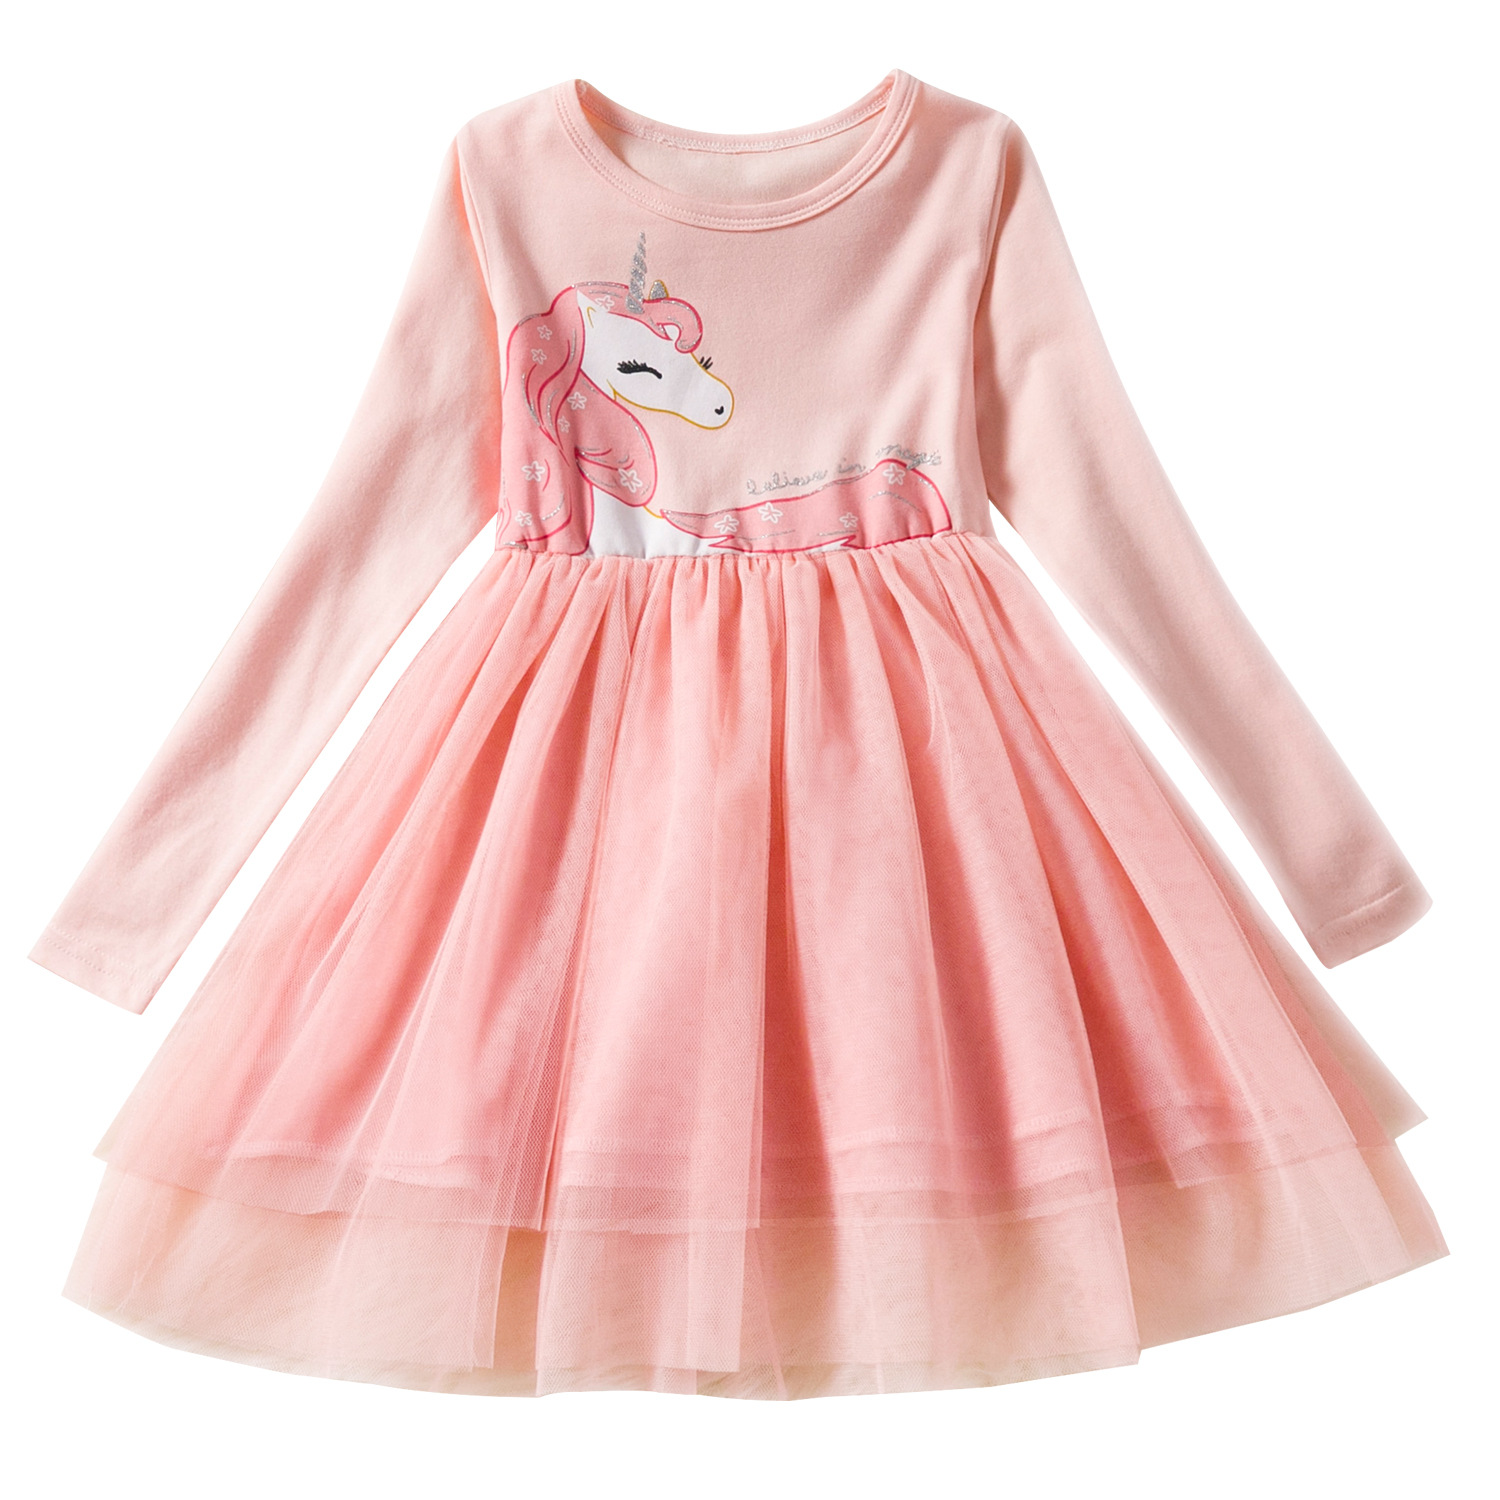 unicorn dress 2018 summer dresses for girls princess